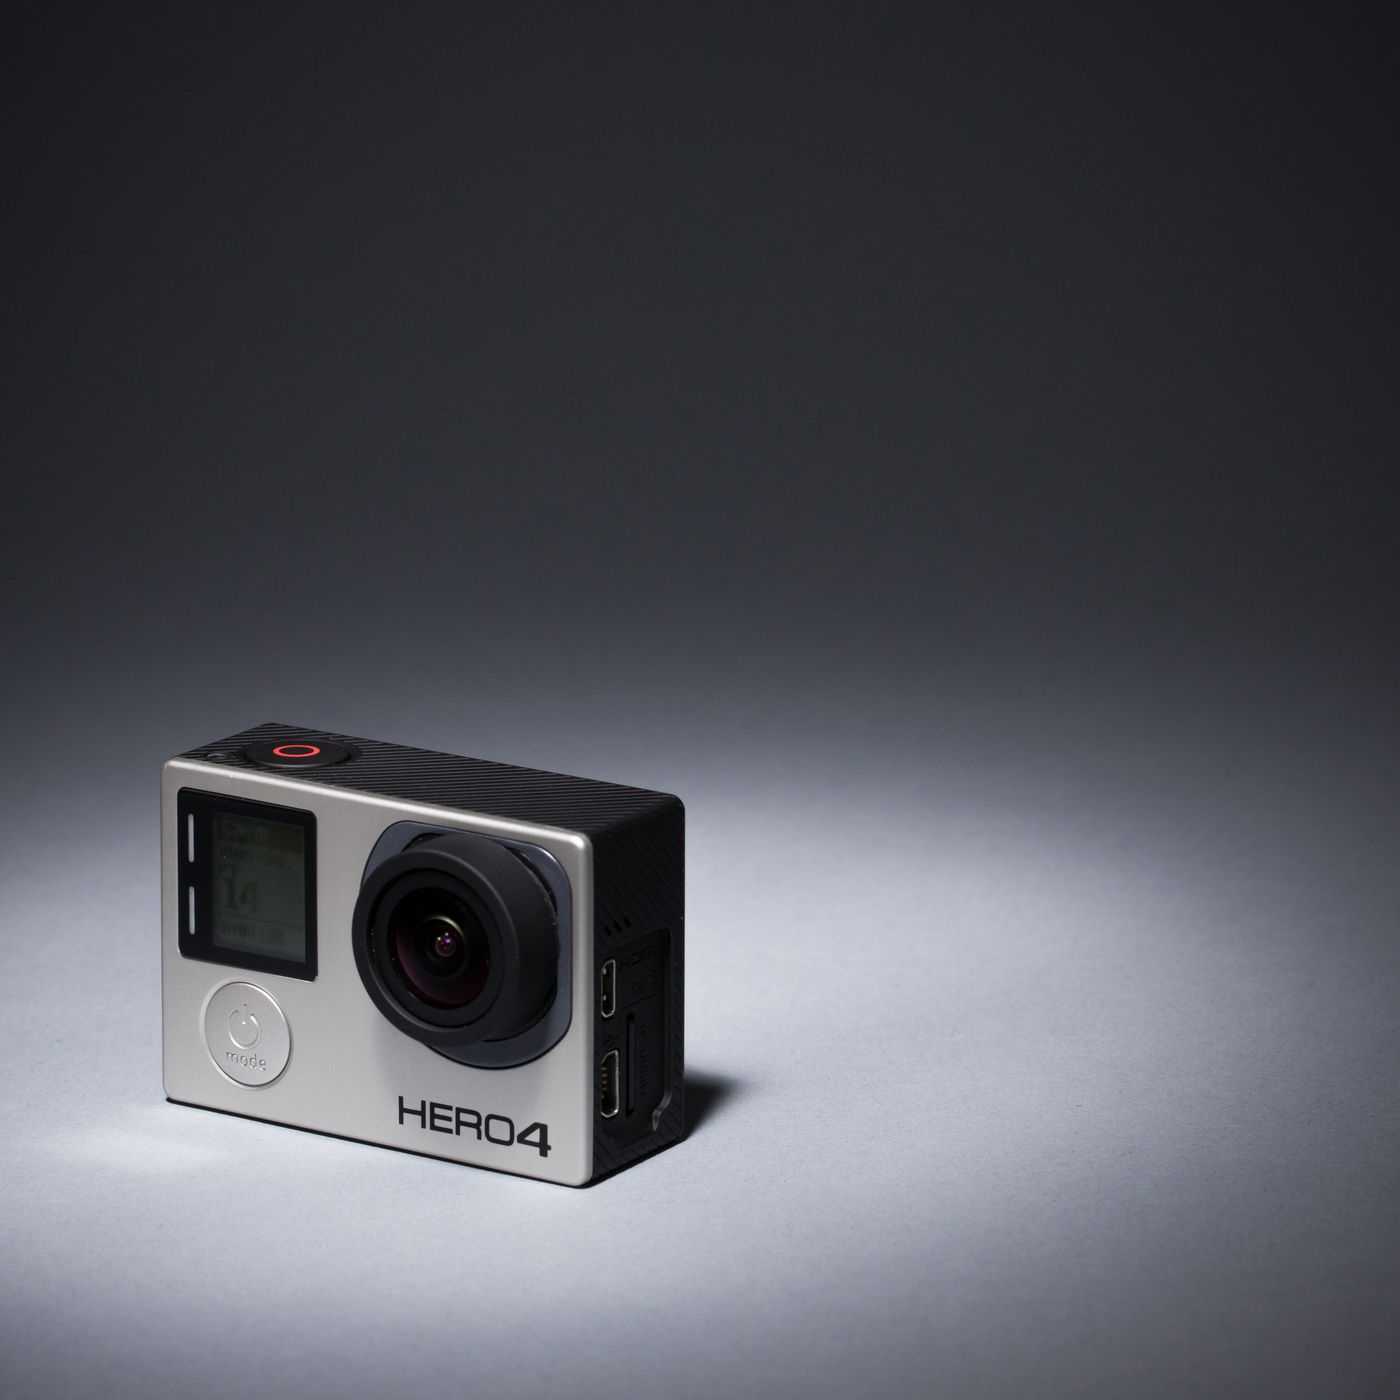 The best action camera you can buy - The Verge